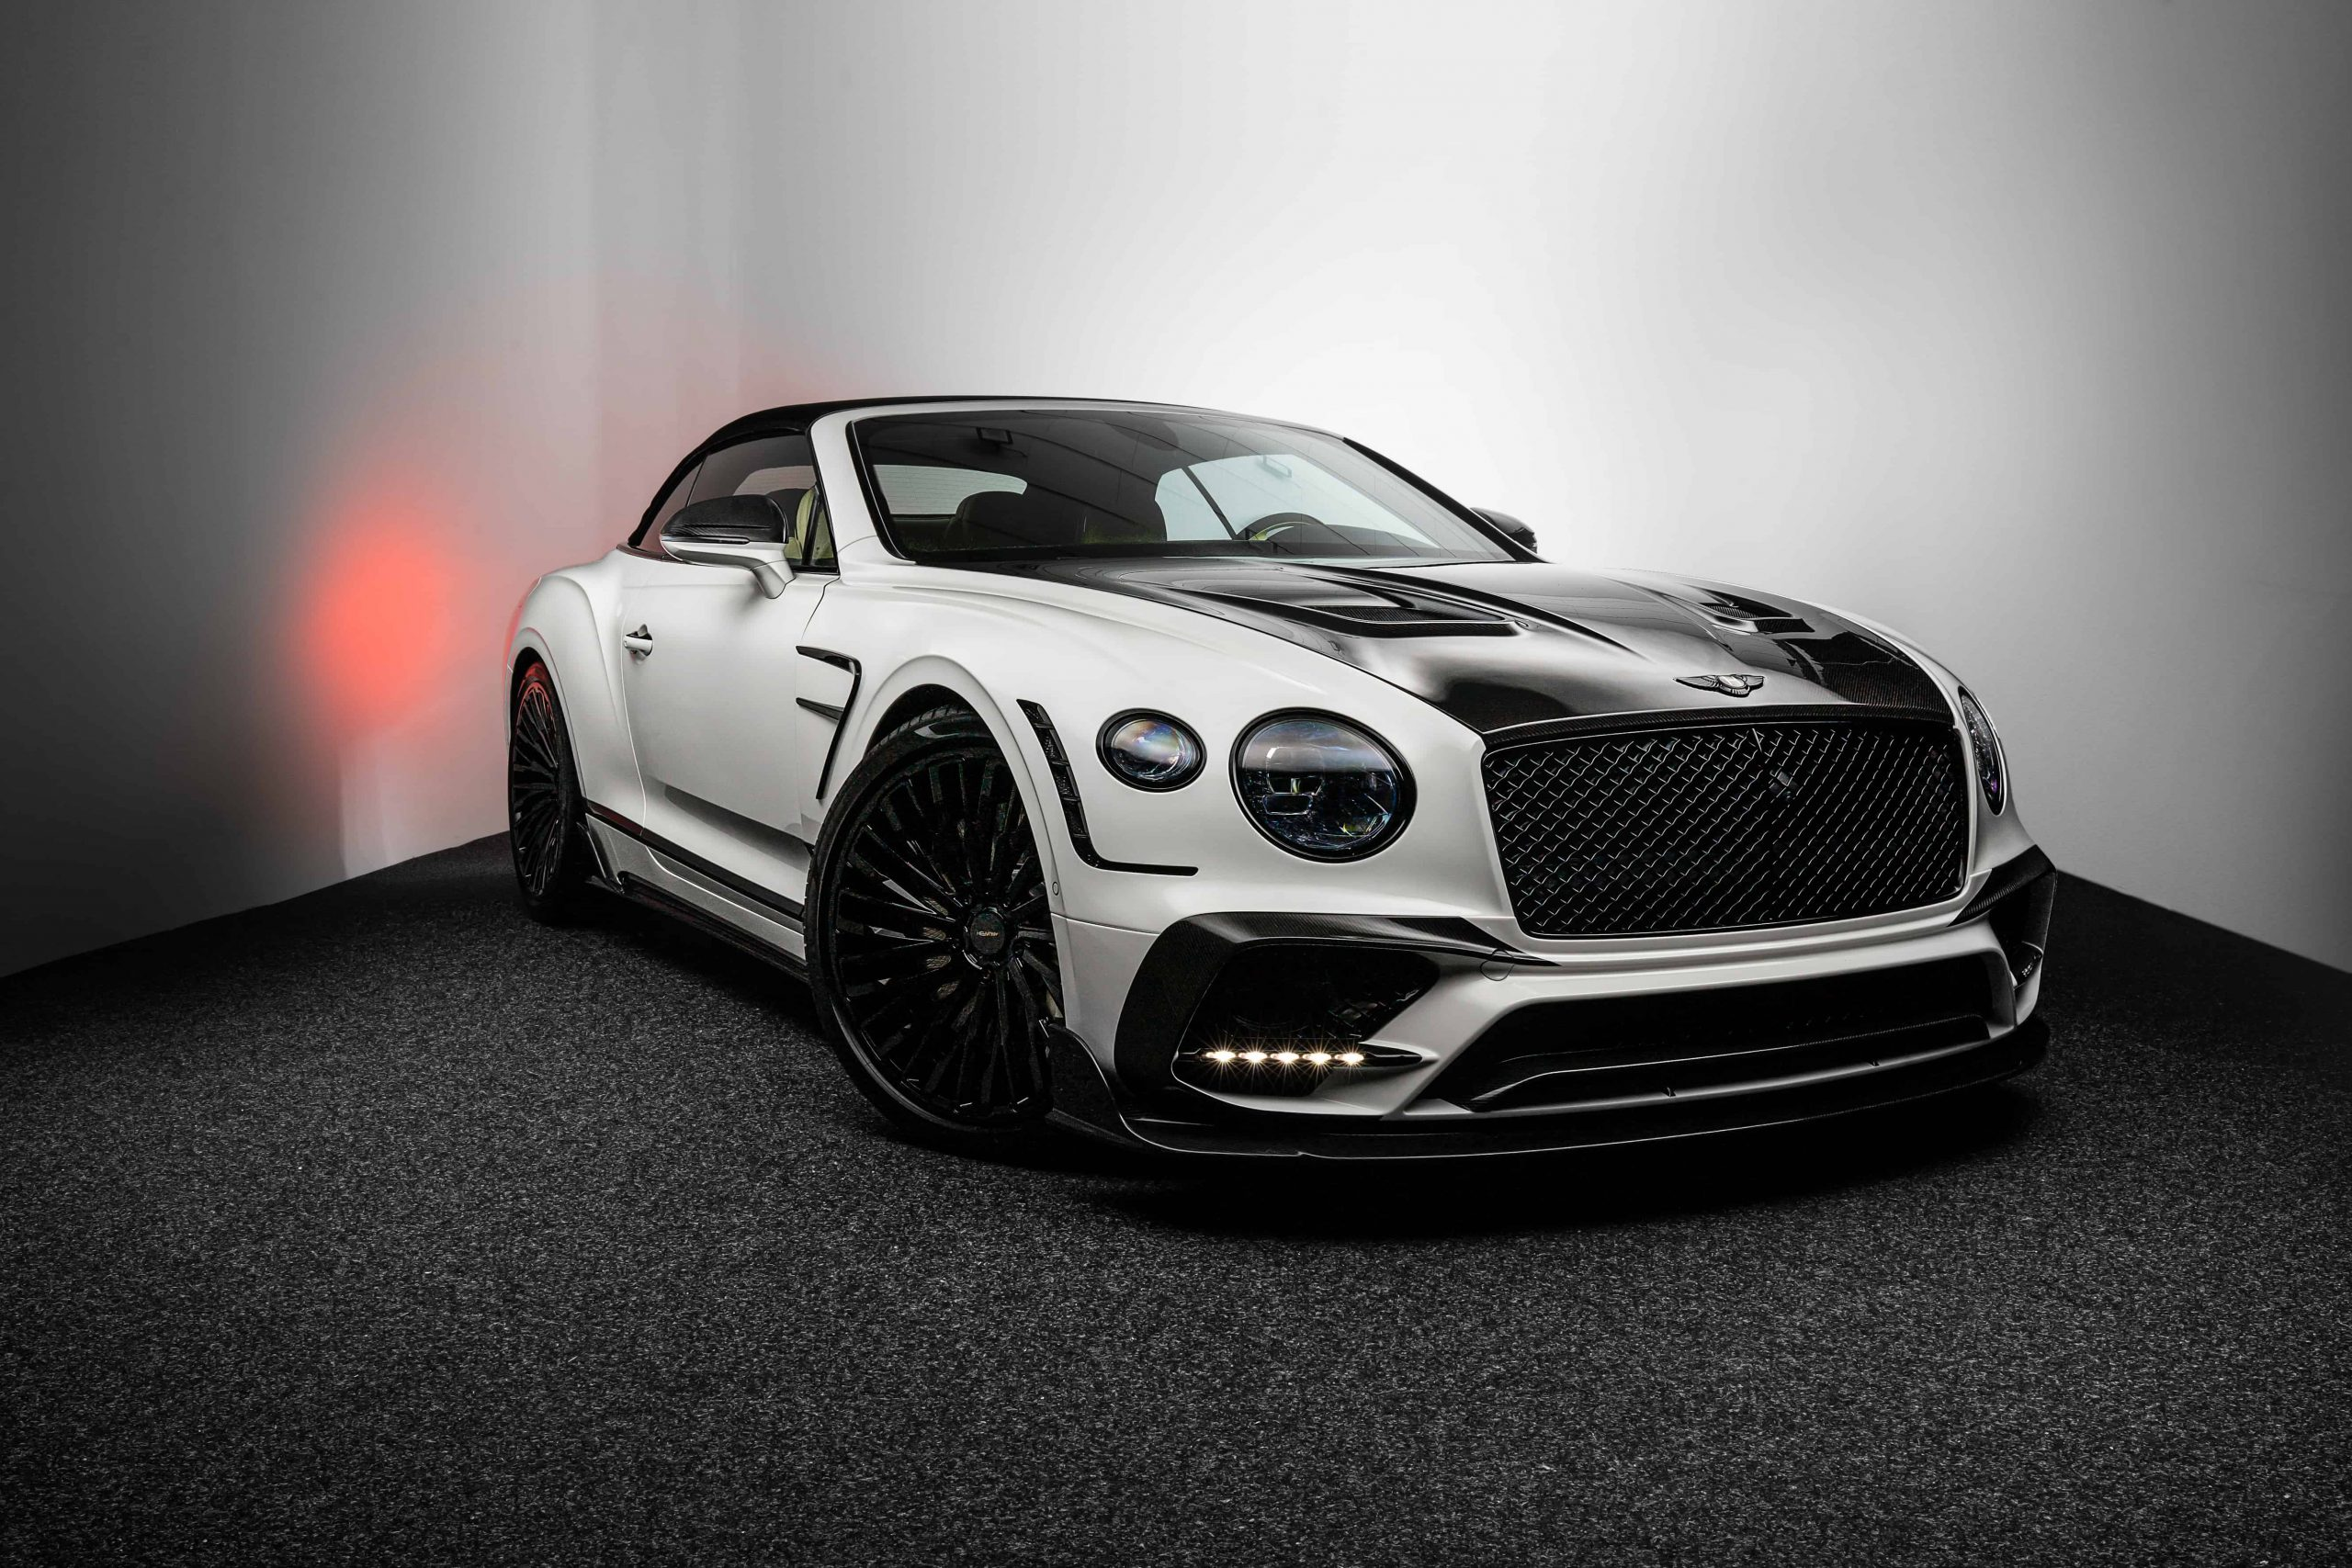 Bentley Continental GT-GTC by Keyvany